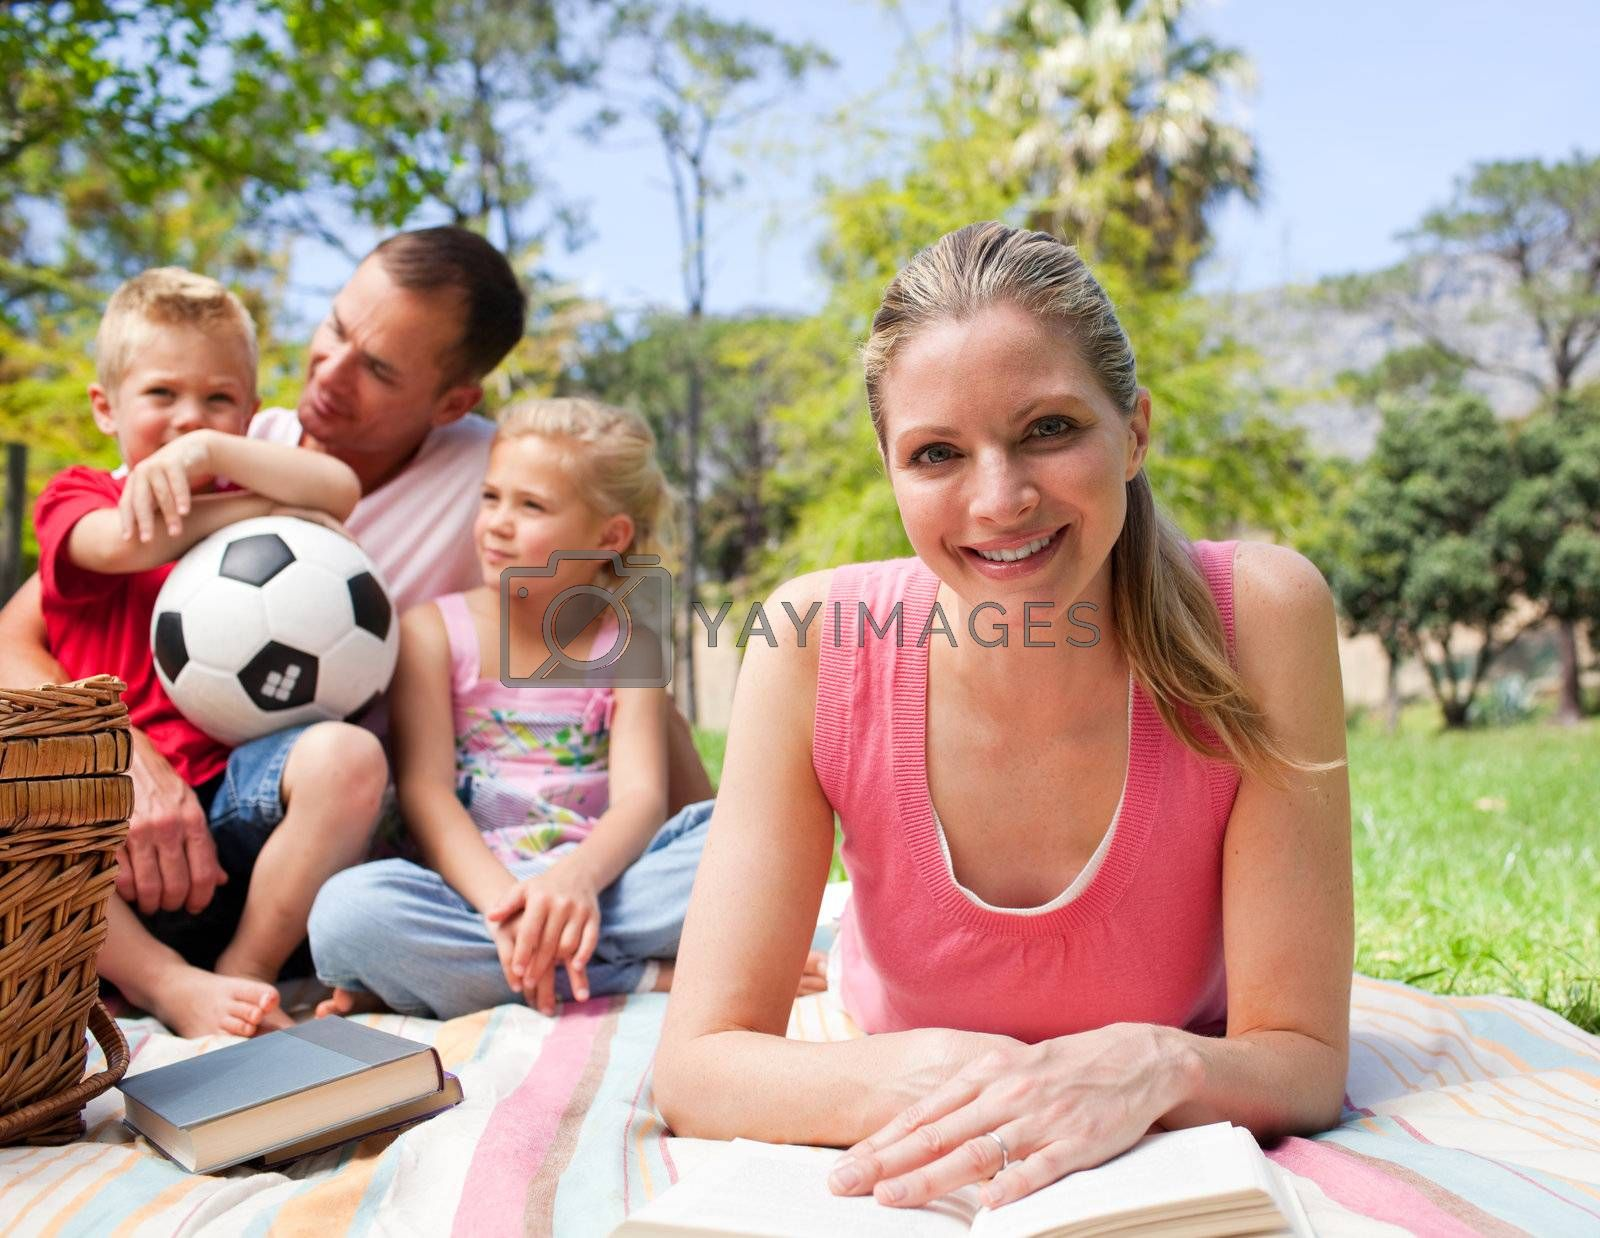 Smiling woman reading at a picnic with her family in the background